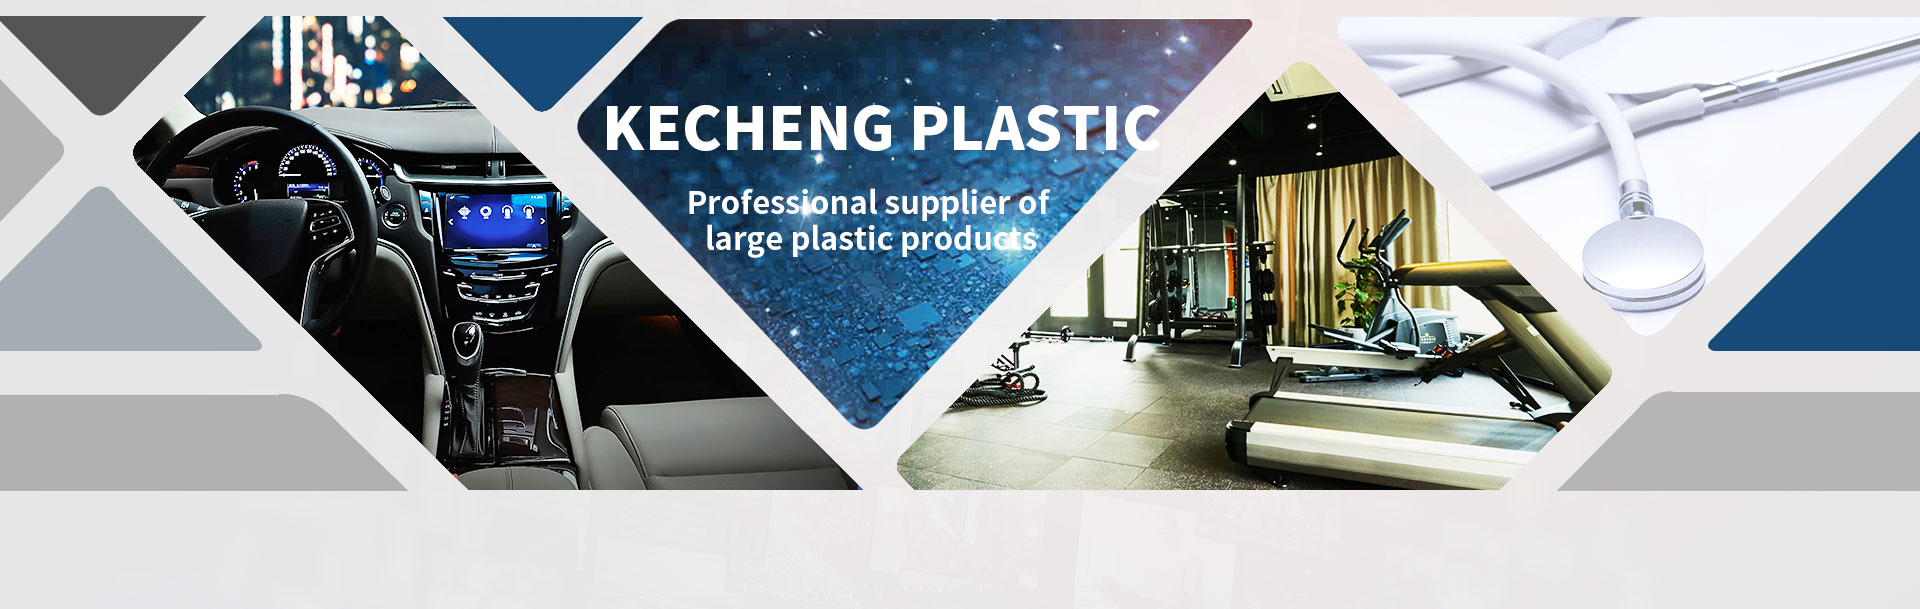 Kecheng Plastics Professional supplier of large plastic products